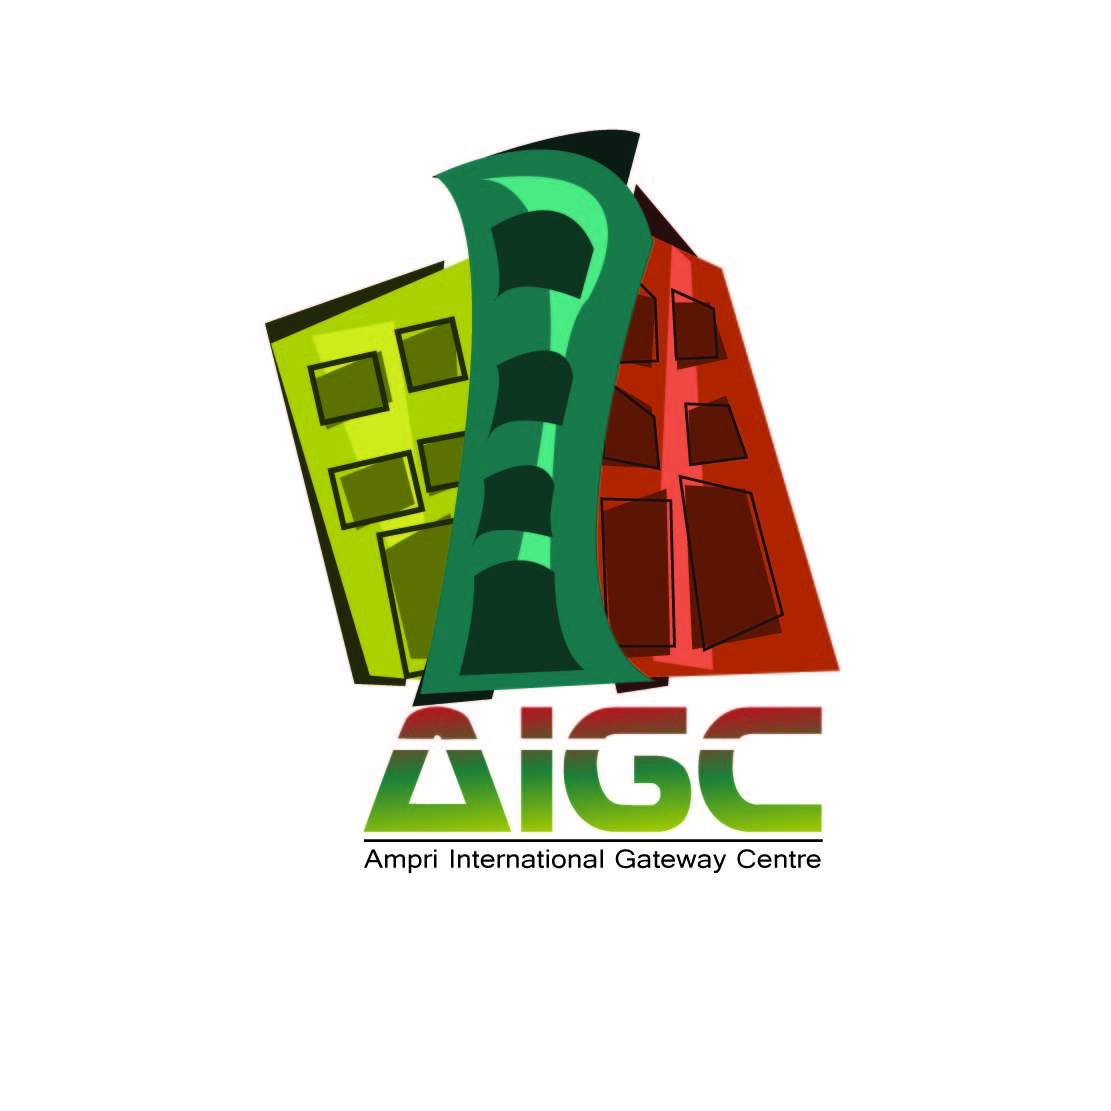 Logo Design by Saunter - Entry No. 1 in the Logo Design Contest Ampri International Gateway Centre (AIGC).